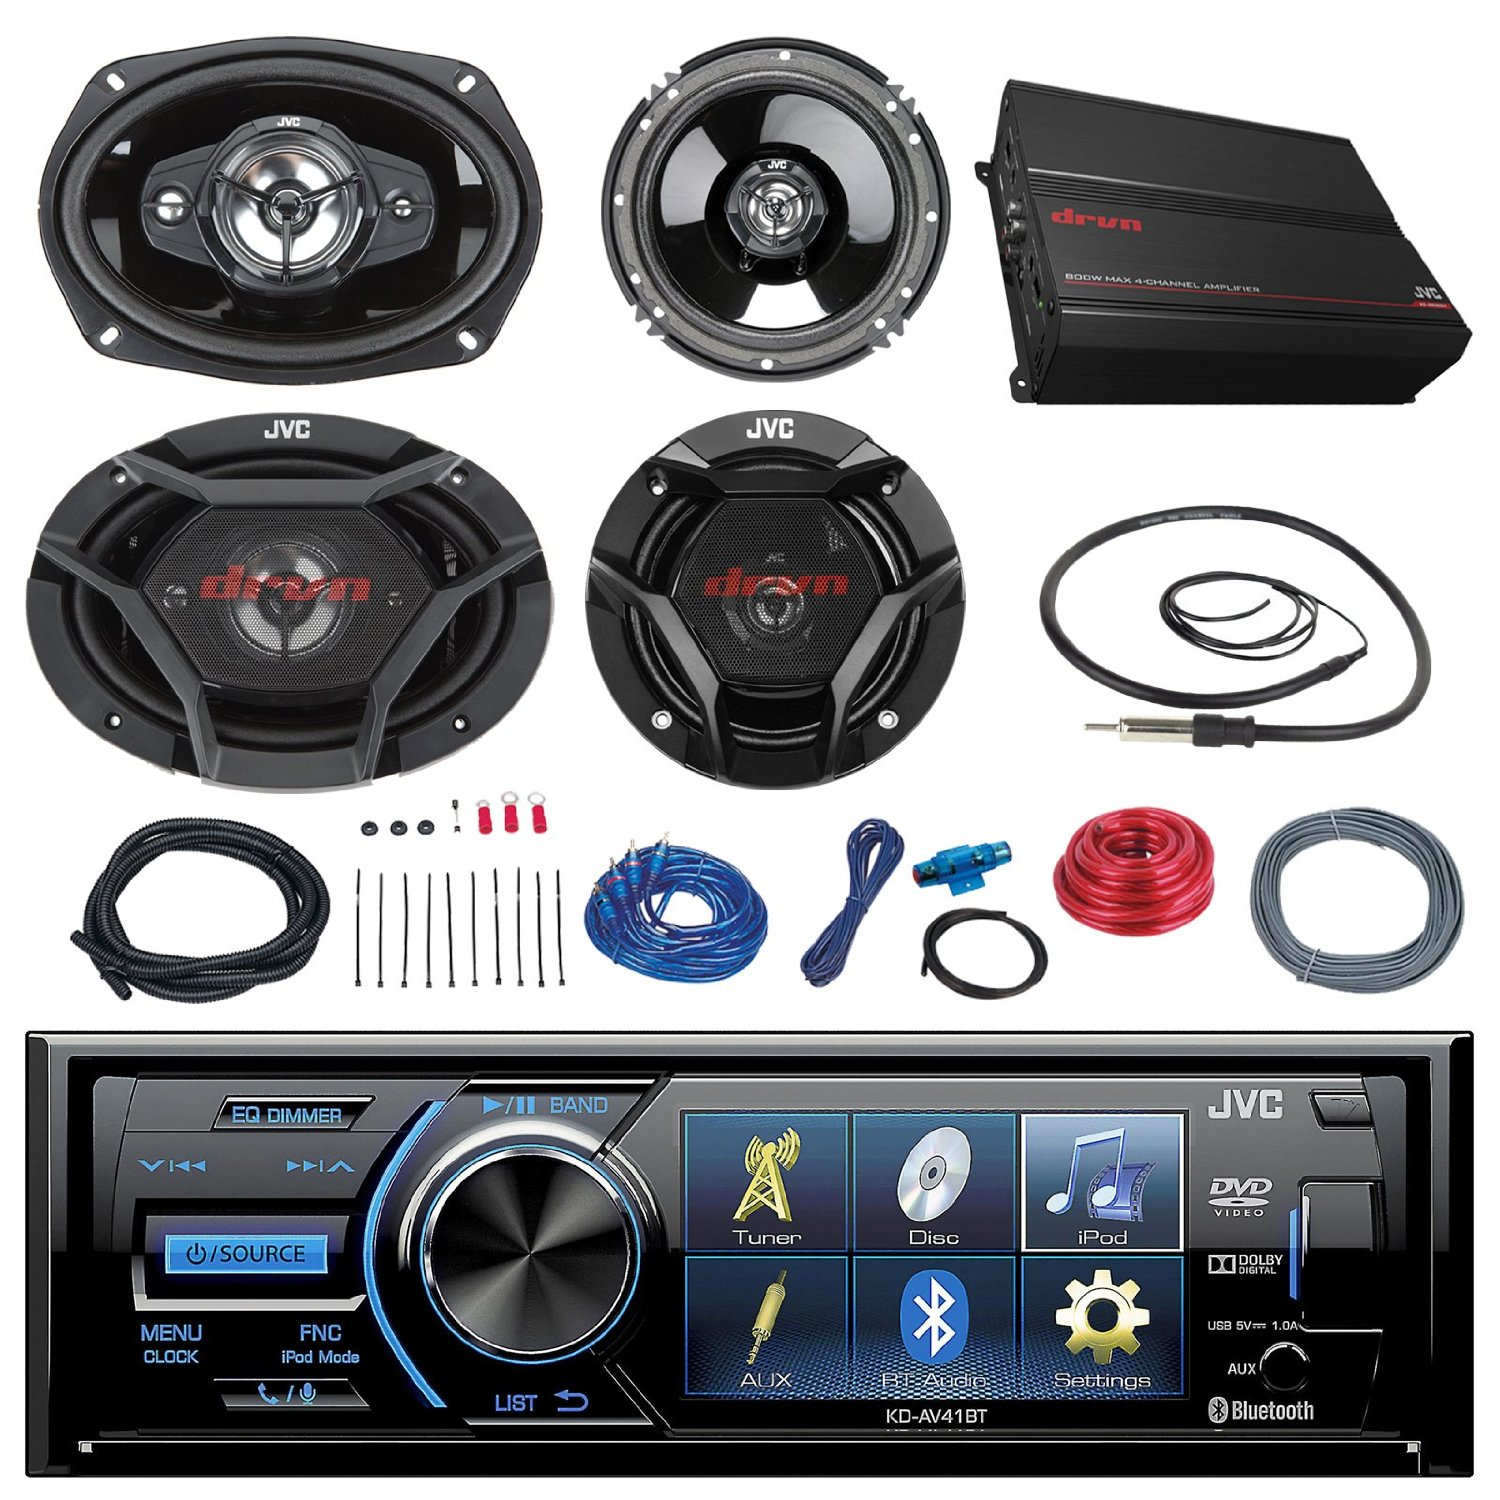 Buy Jvc Kd Av41bt 3 Car Dvd Bluetooth Stereo Receiver Bundle Combo Dual Amplifier Wiring Kit With 2x 65 2 Way And 6x9 Inch 4 Coaxial Speakers 1000 Watt Channel Install